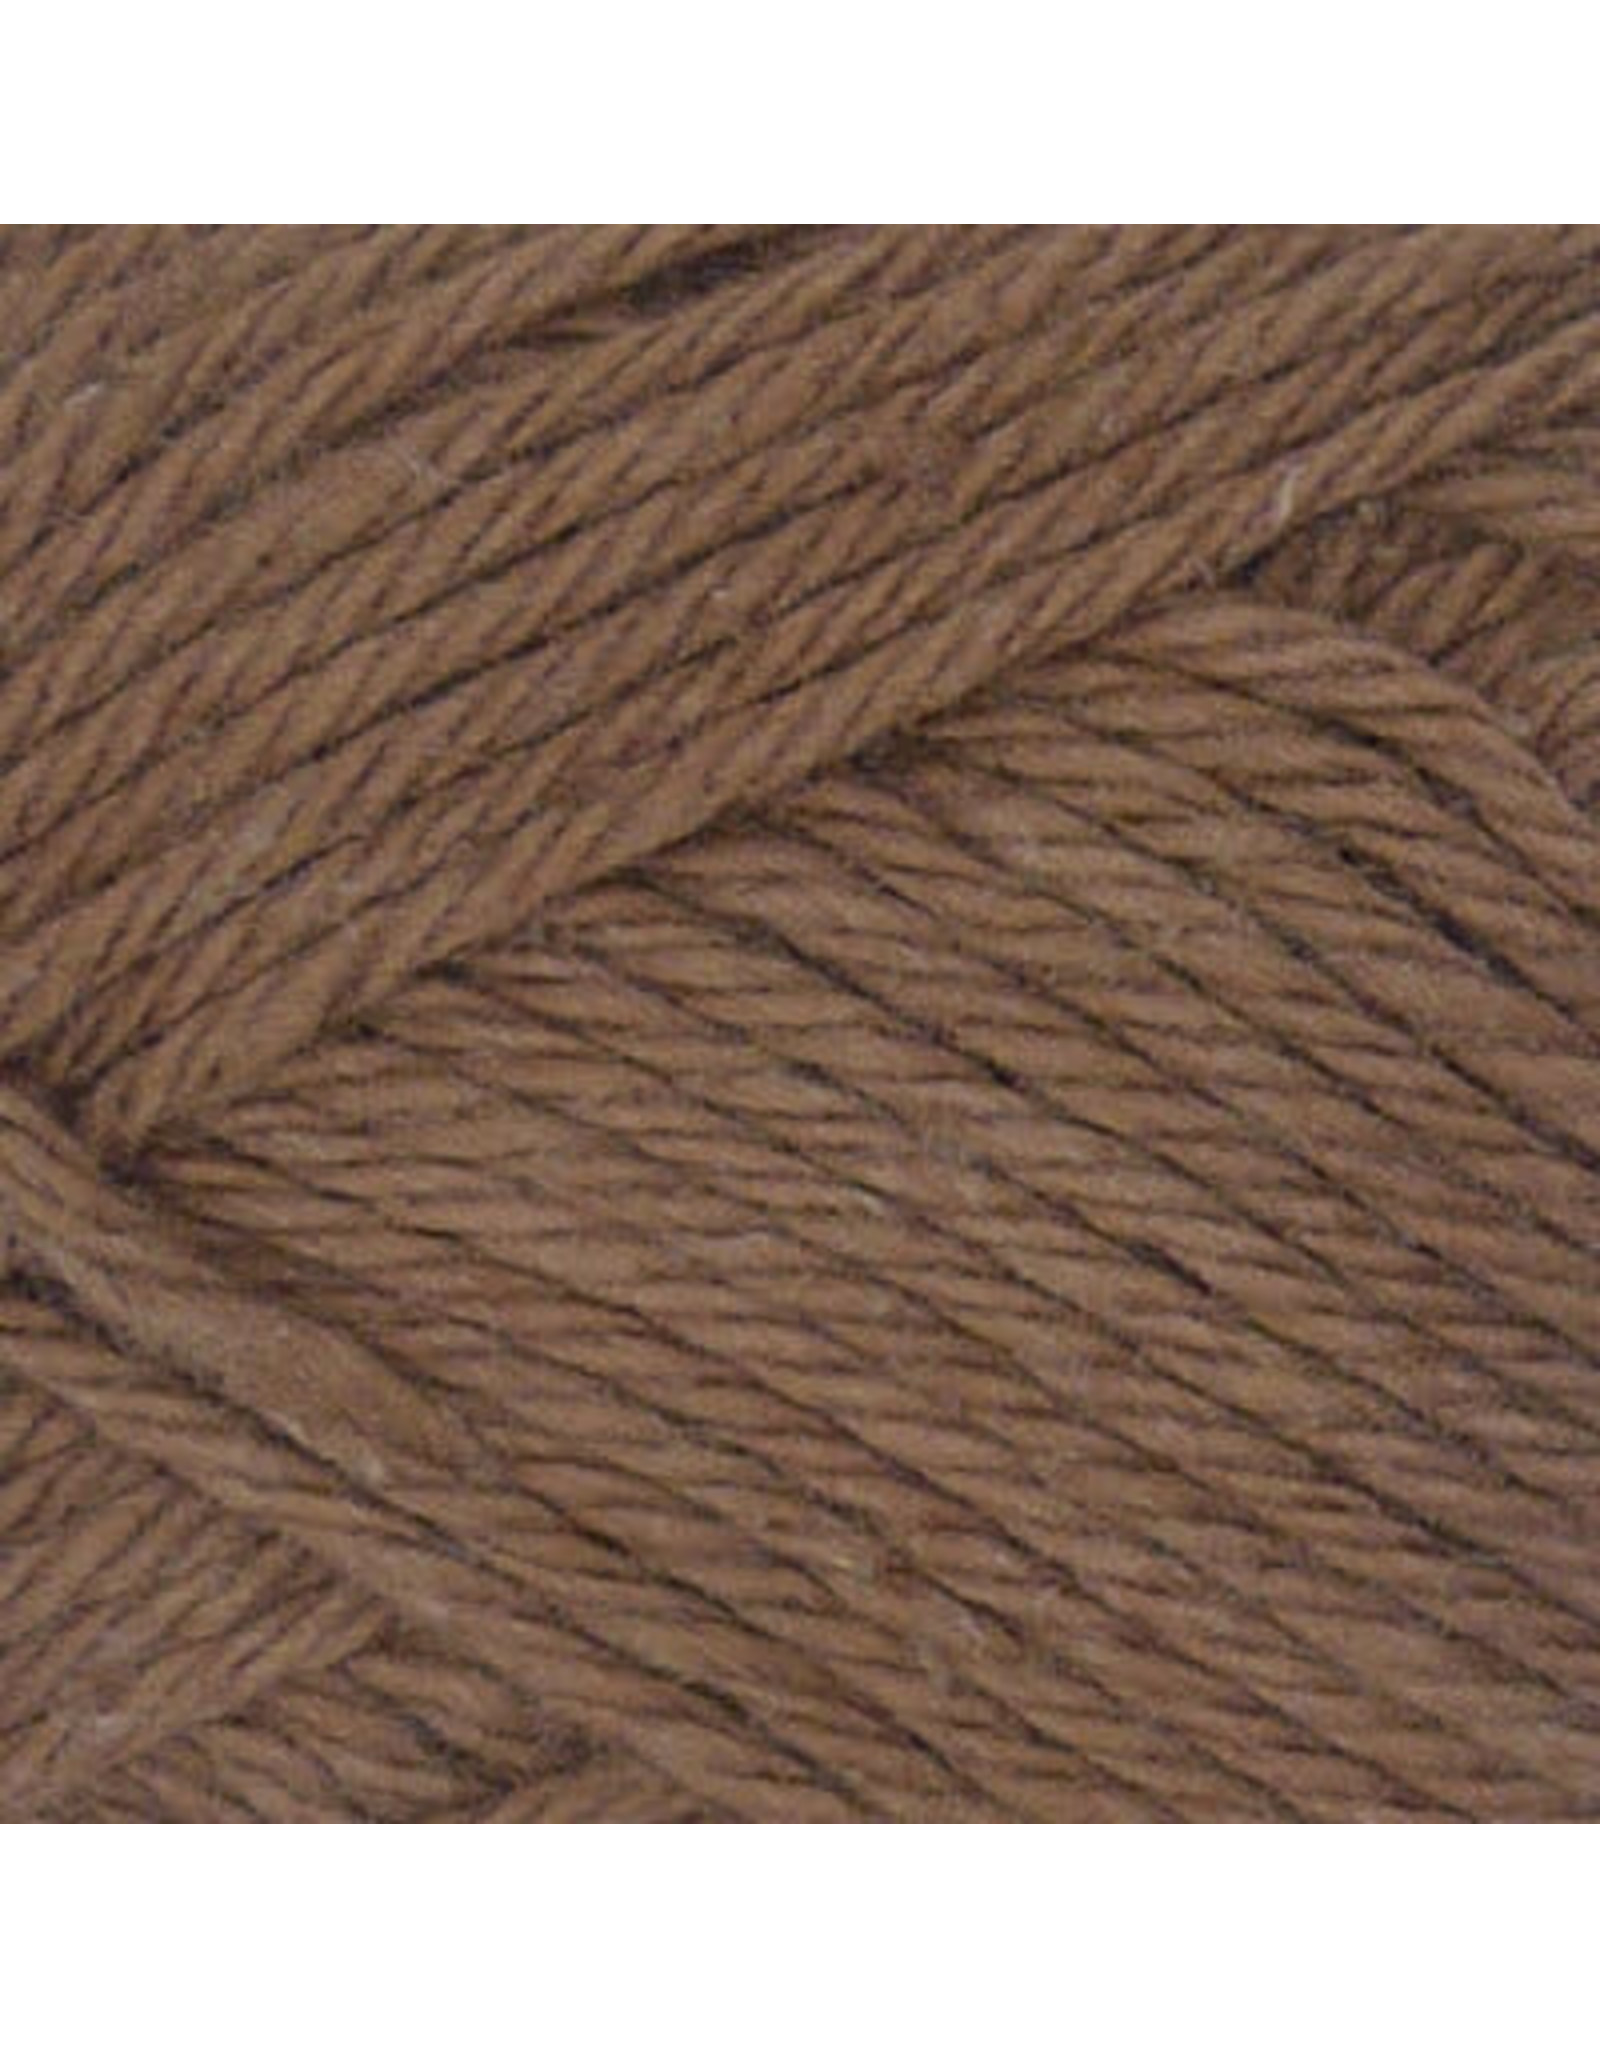 Sudz Sudz Cotton Solids, 2 de 3 - Estelle Yarns